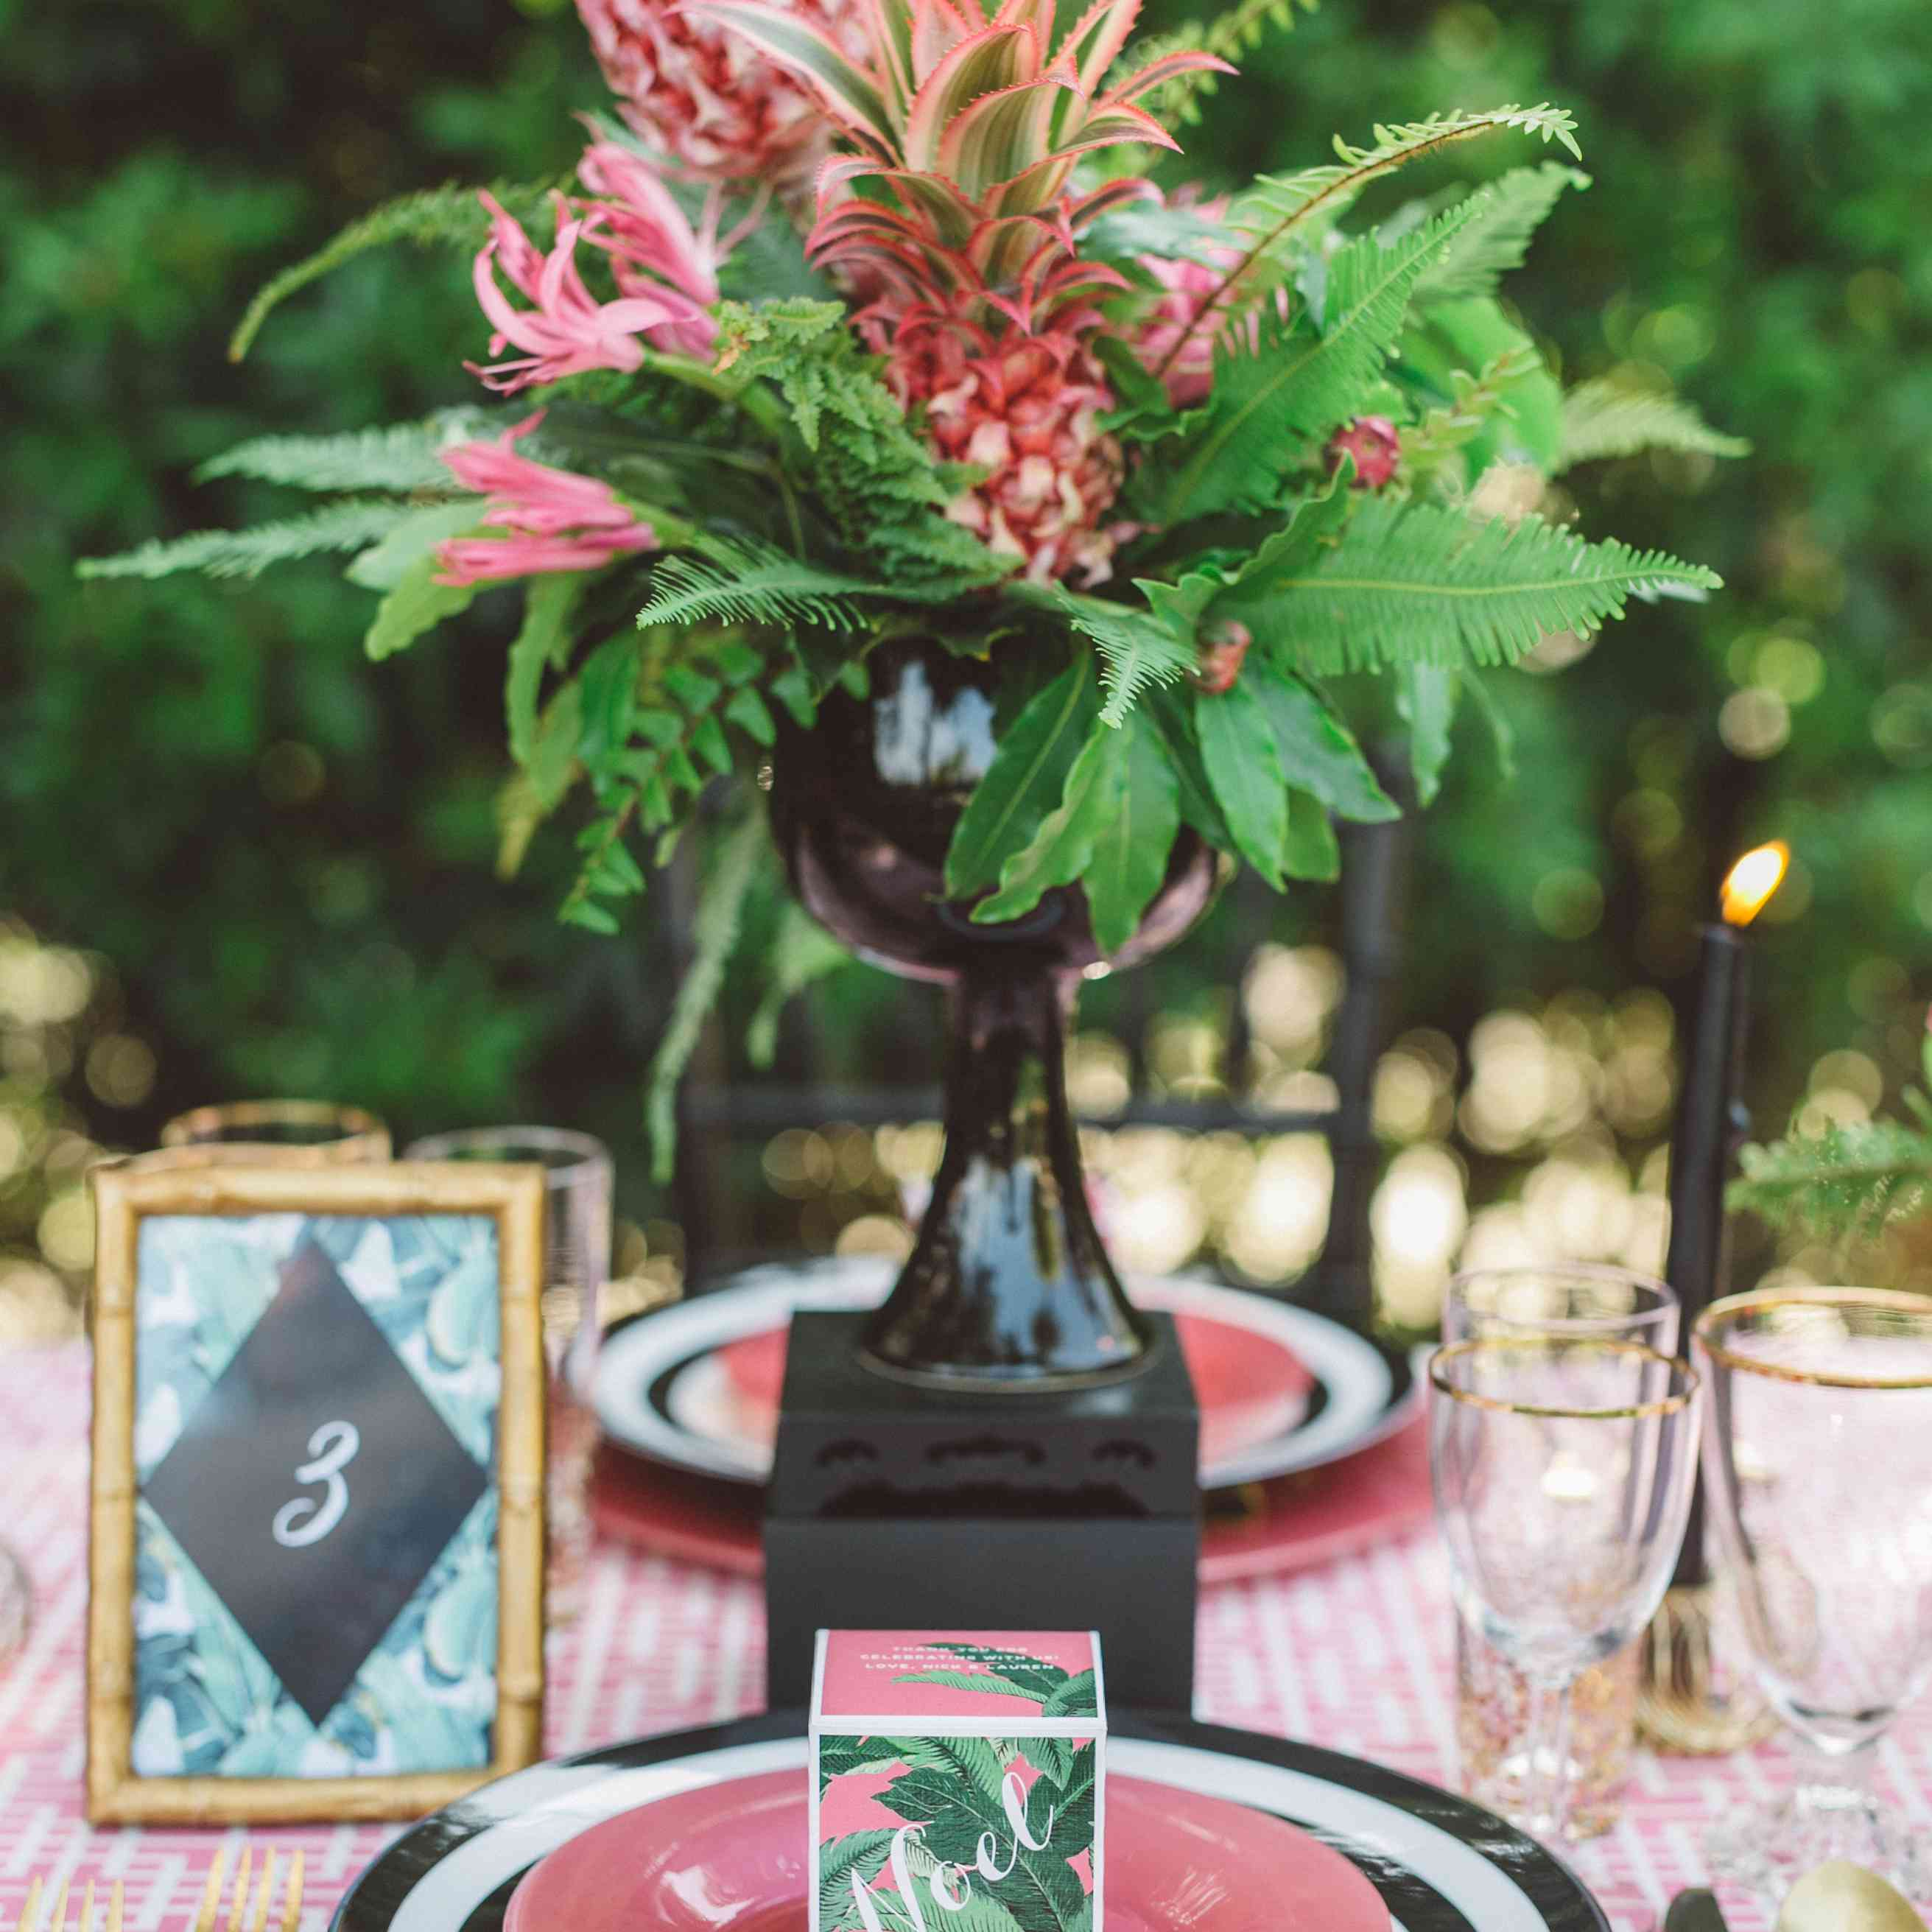 Pink pineapples and greenery as a centerpiece